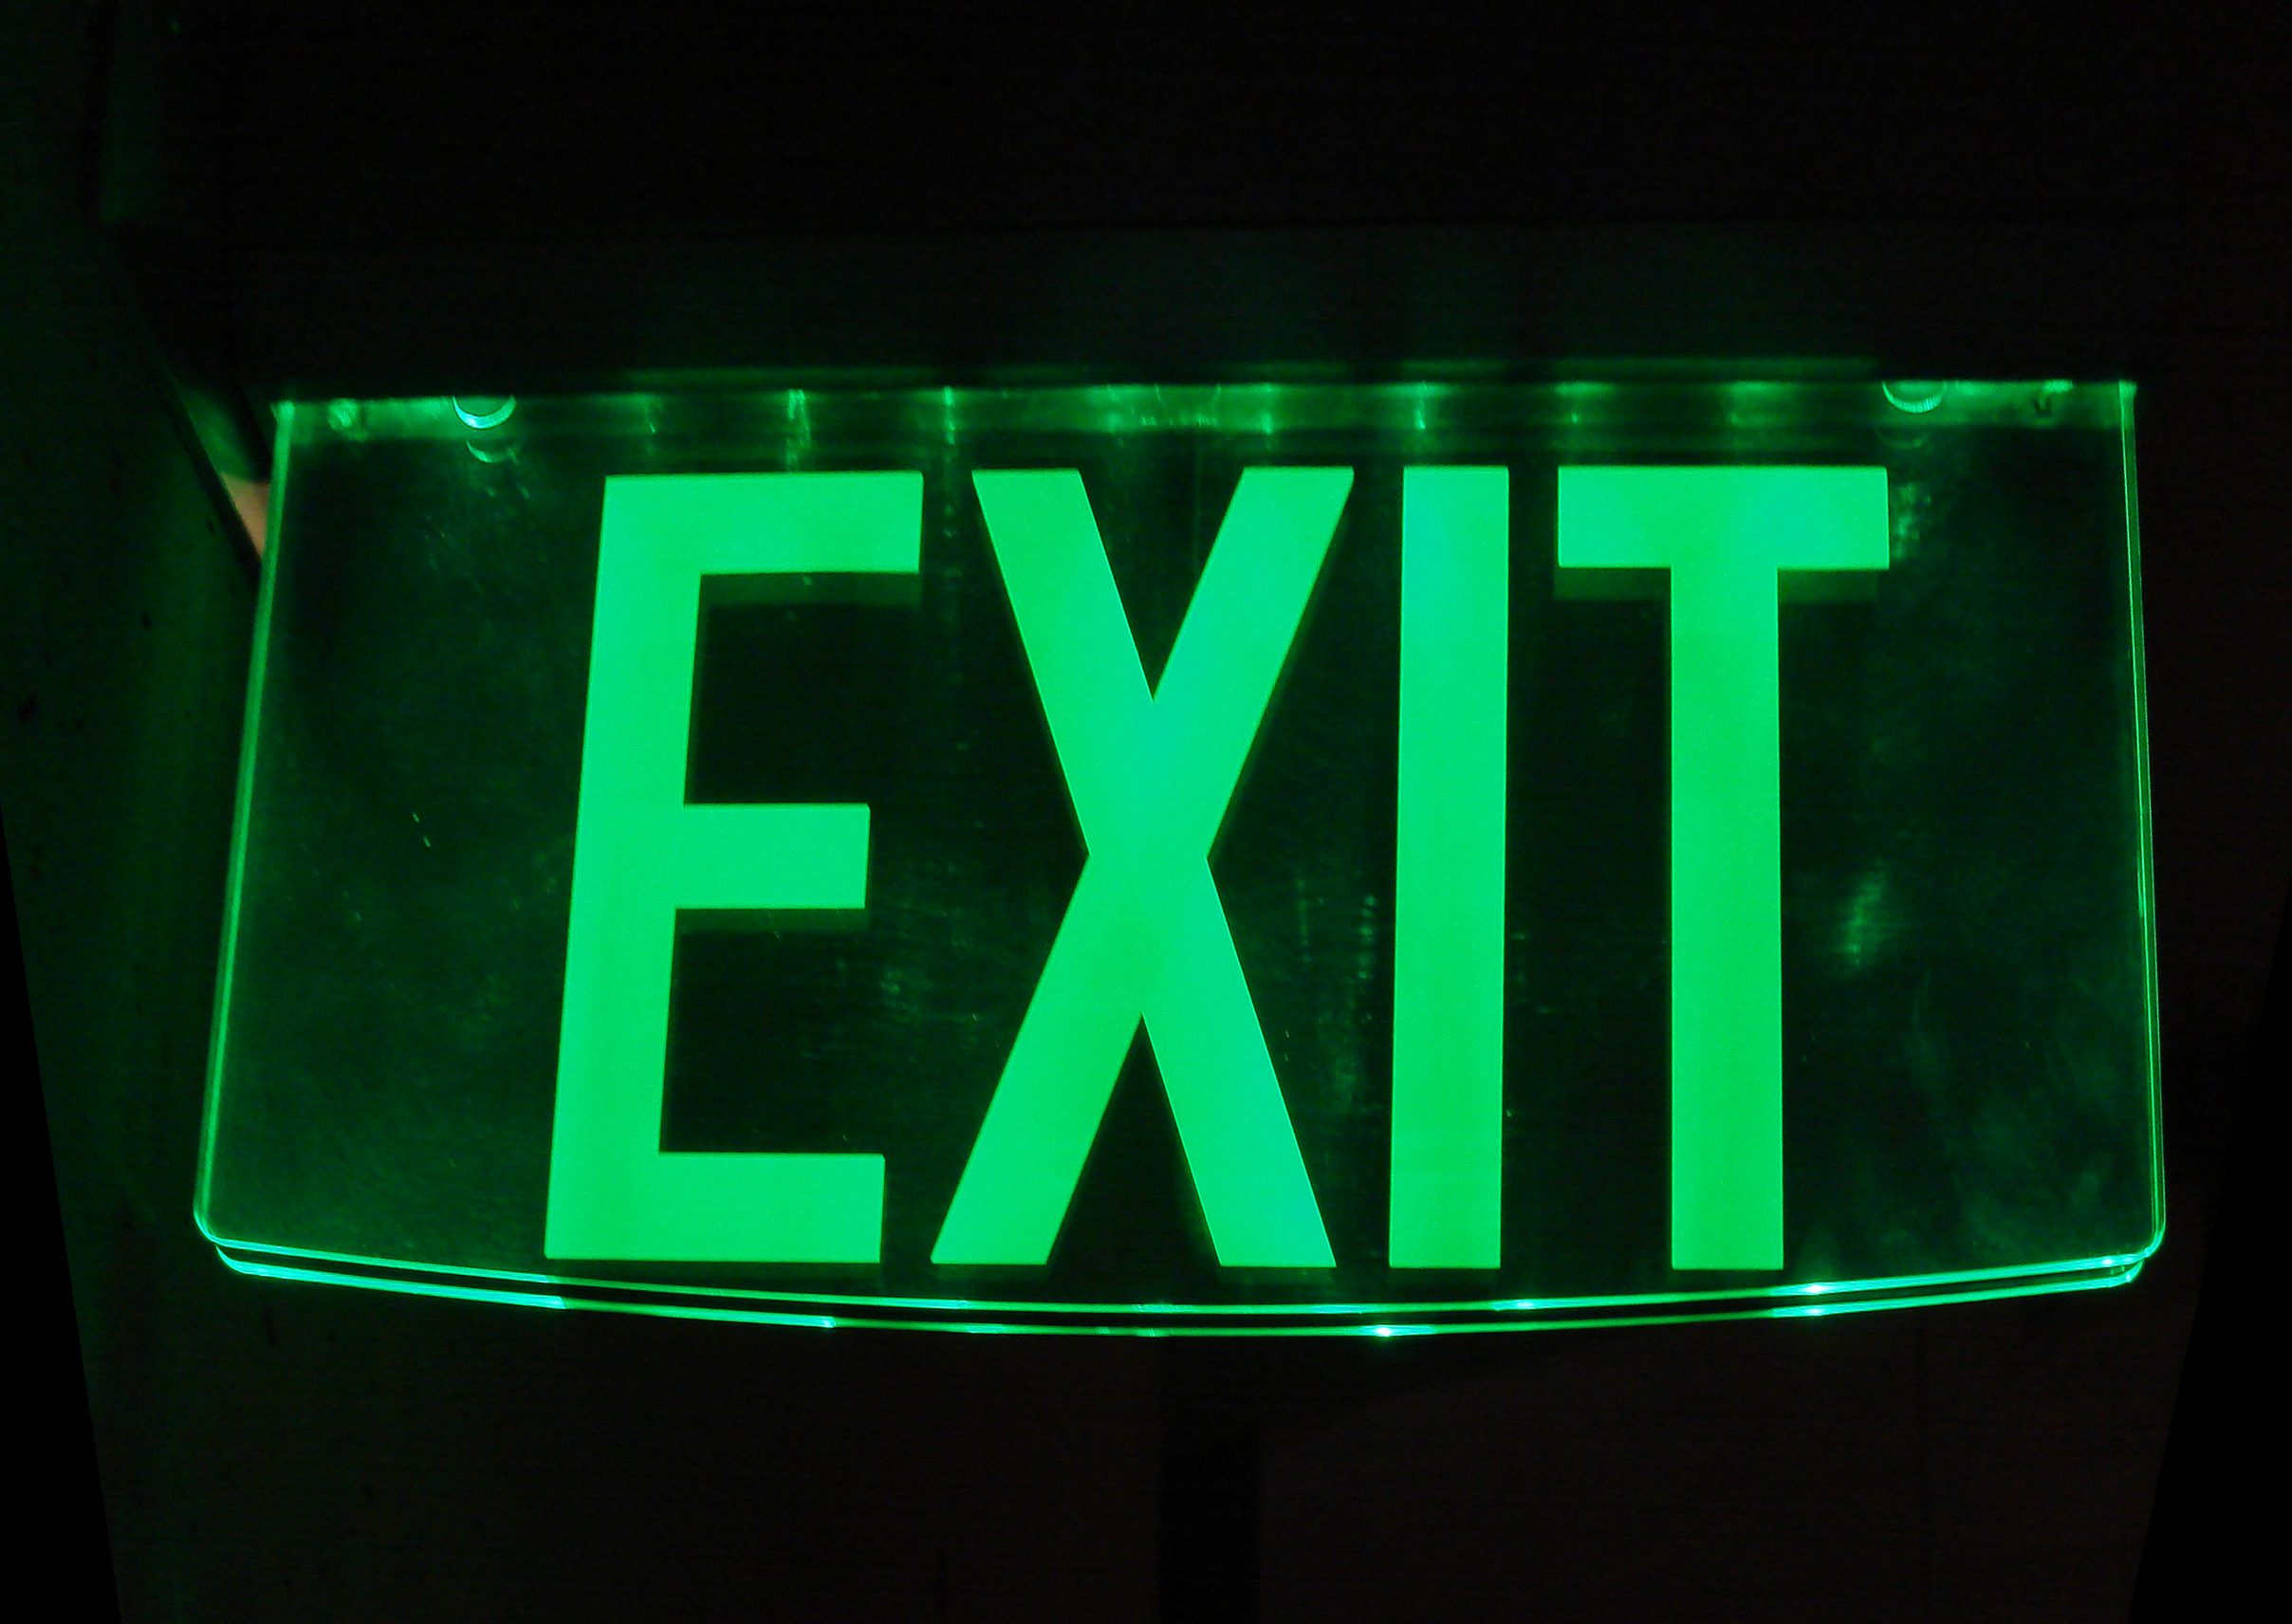 Glass_exit_sign Emergency Lighting